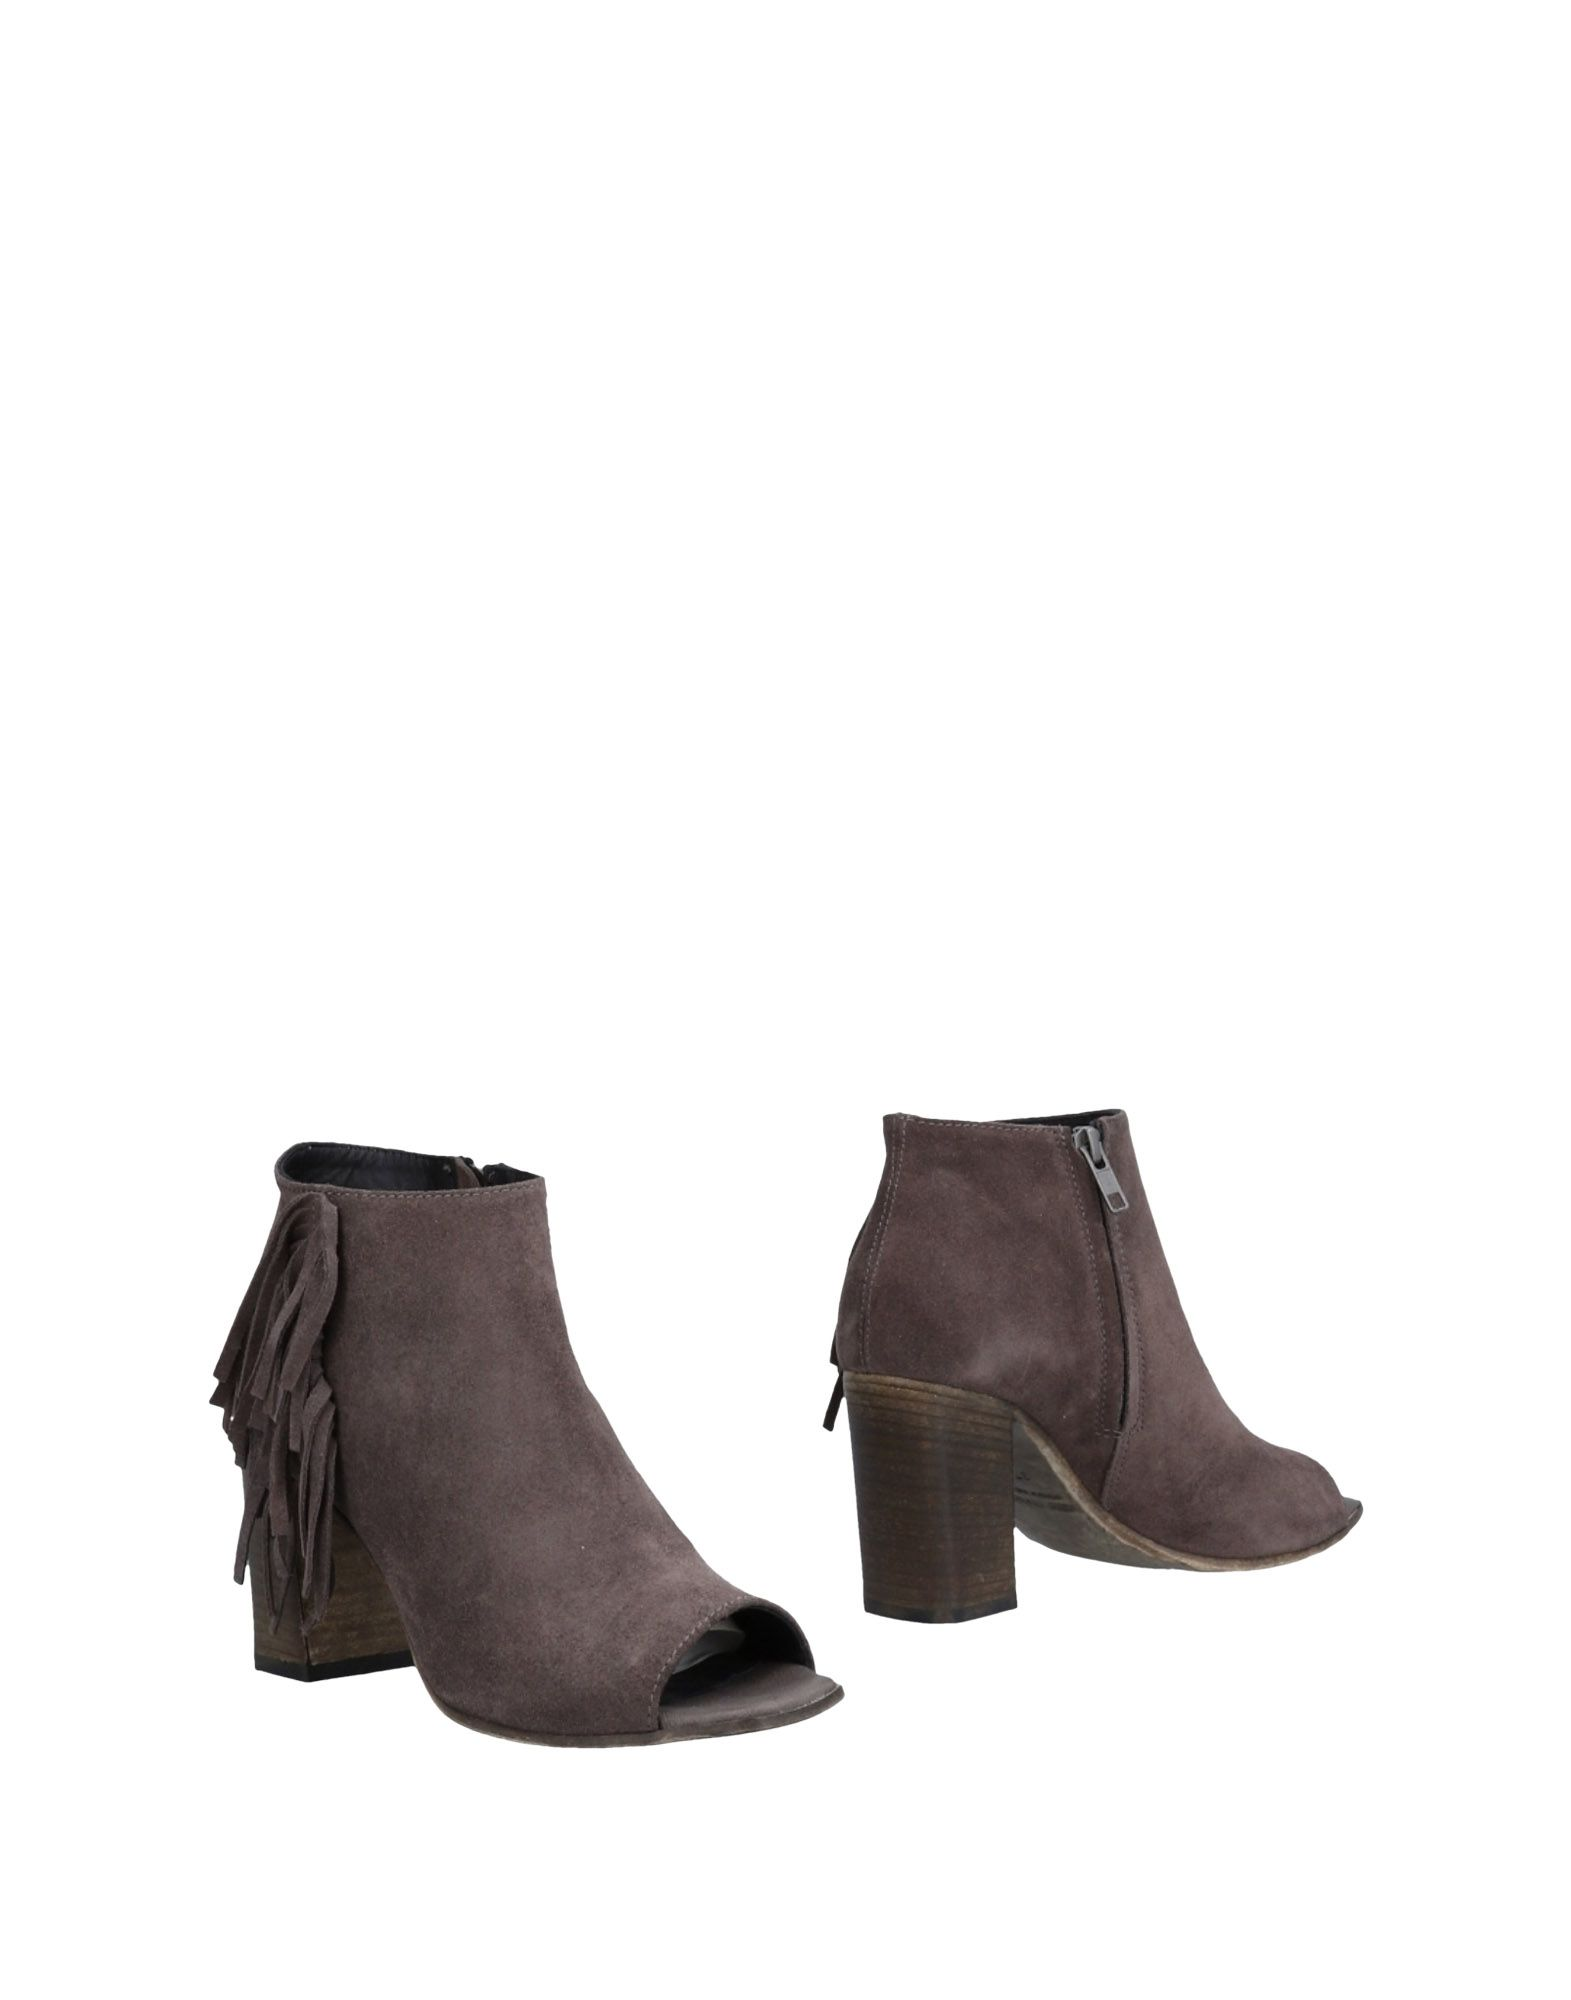 LEMARÉ Ankle Boot in Light Brown